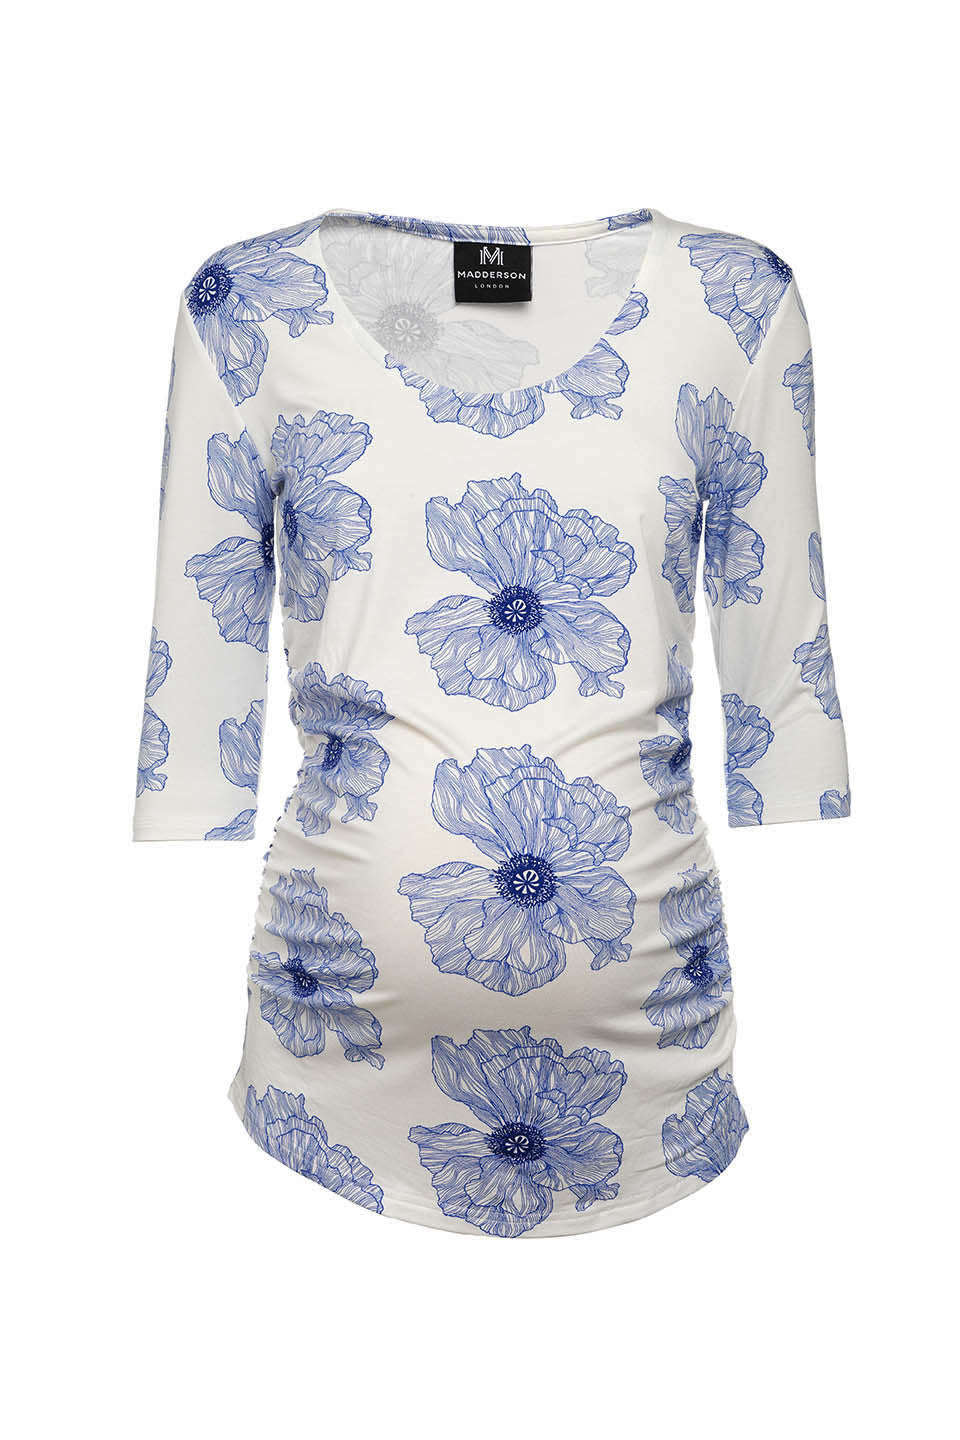 Saturday Top - Maternity Outlet - Madderson London